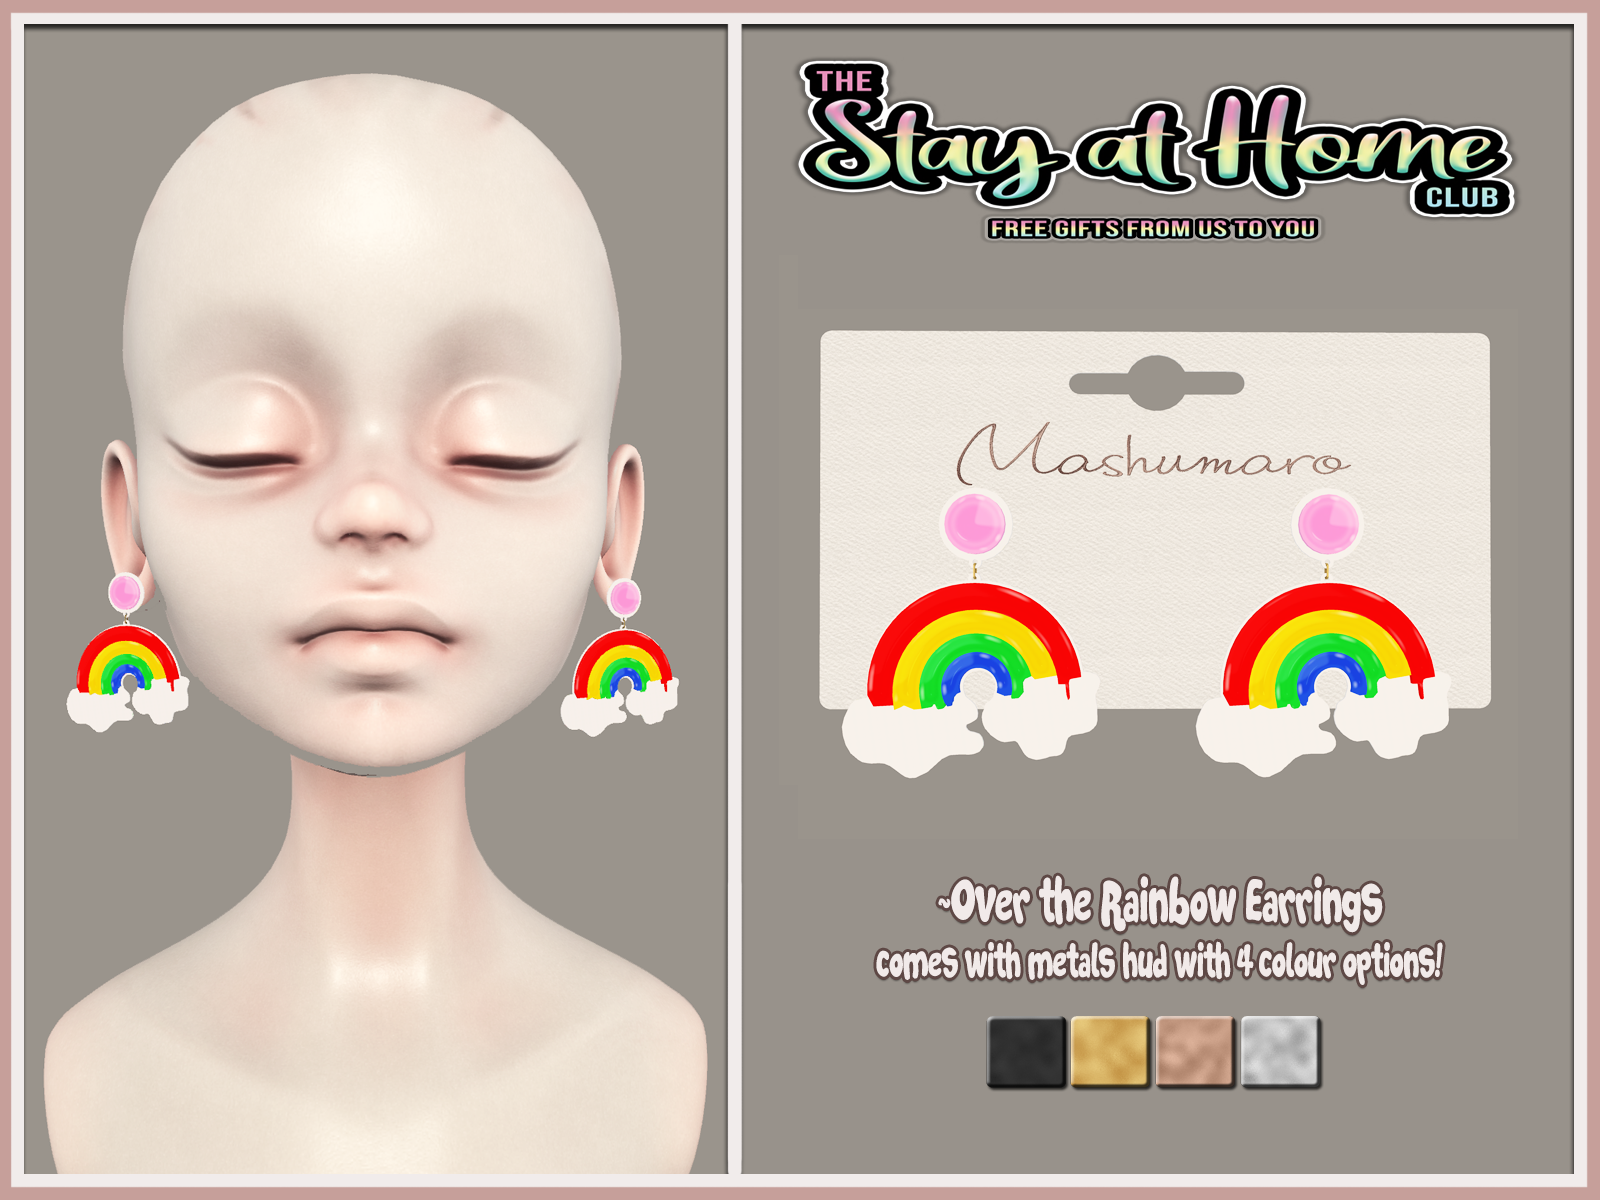 [Mashumaro] - Over the rainbow Earrings